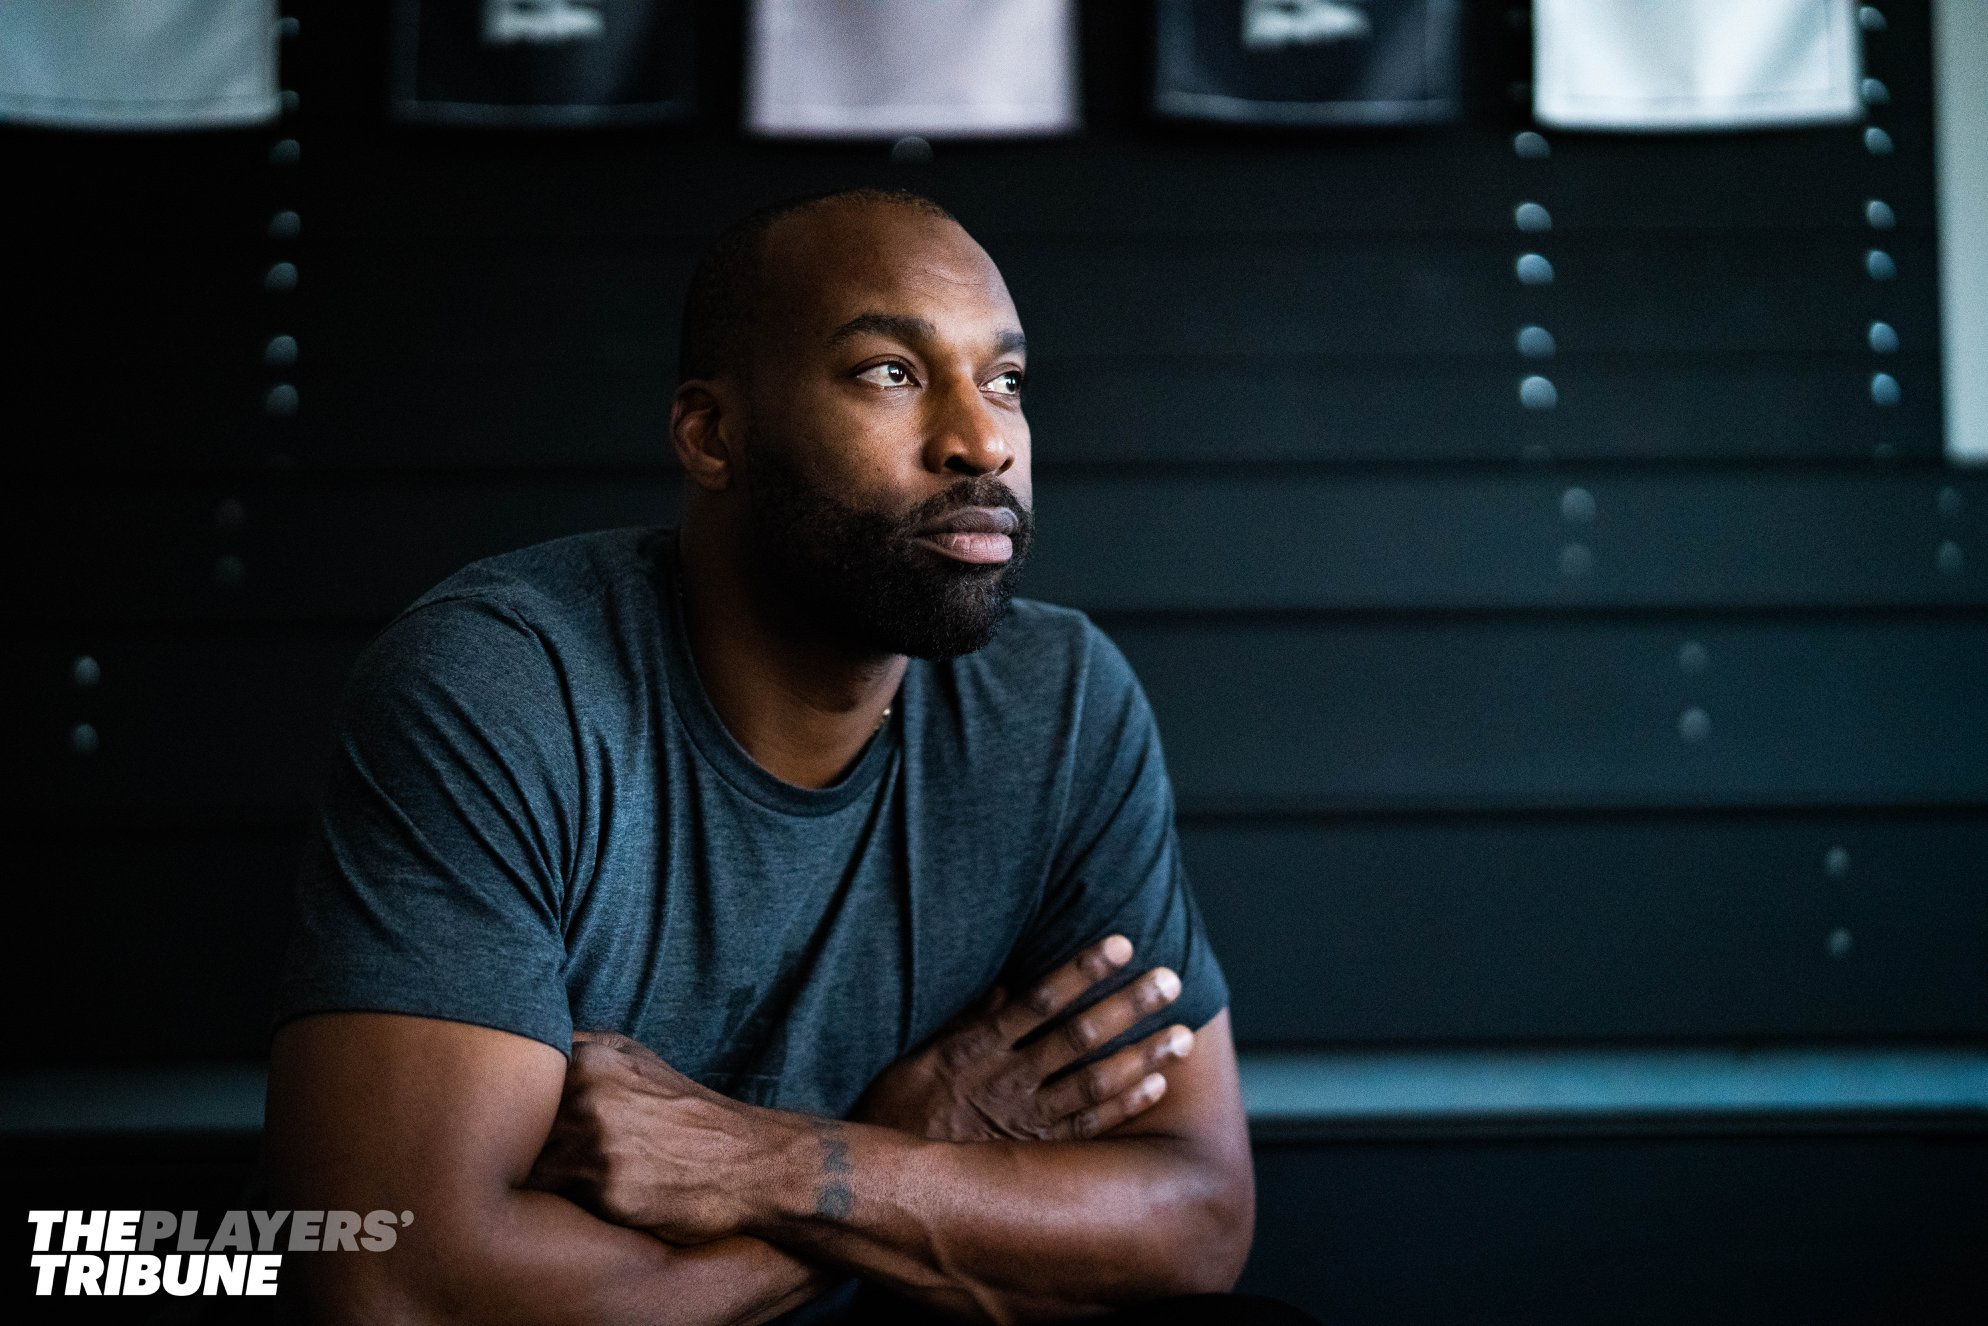 NBA All-Star Baron Davis